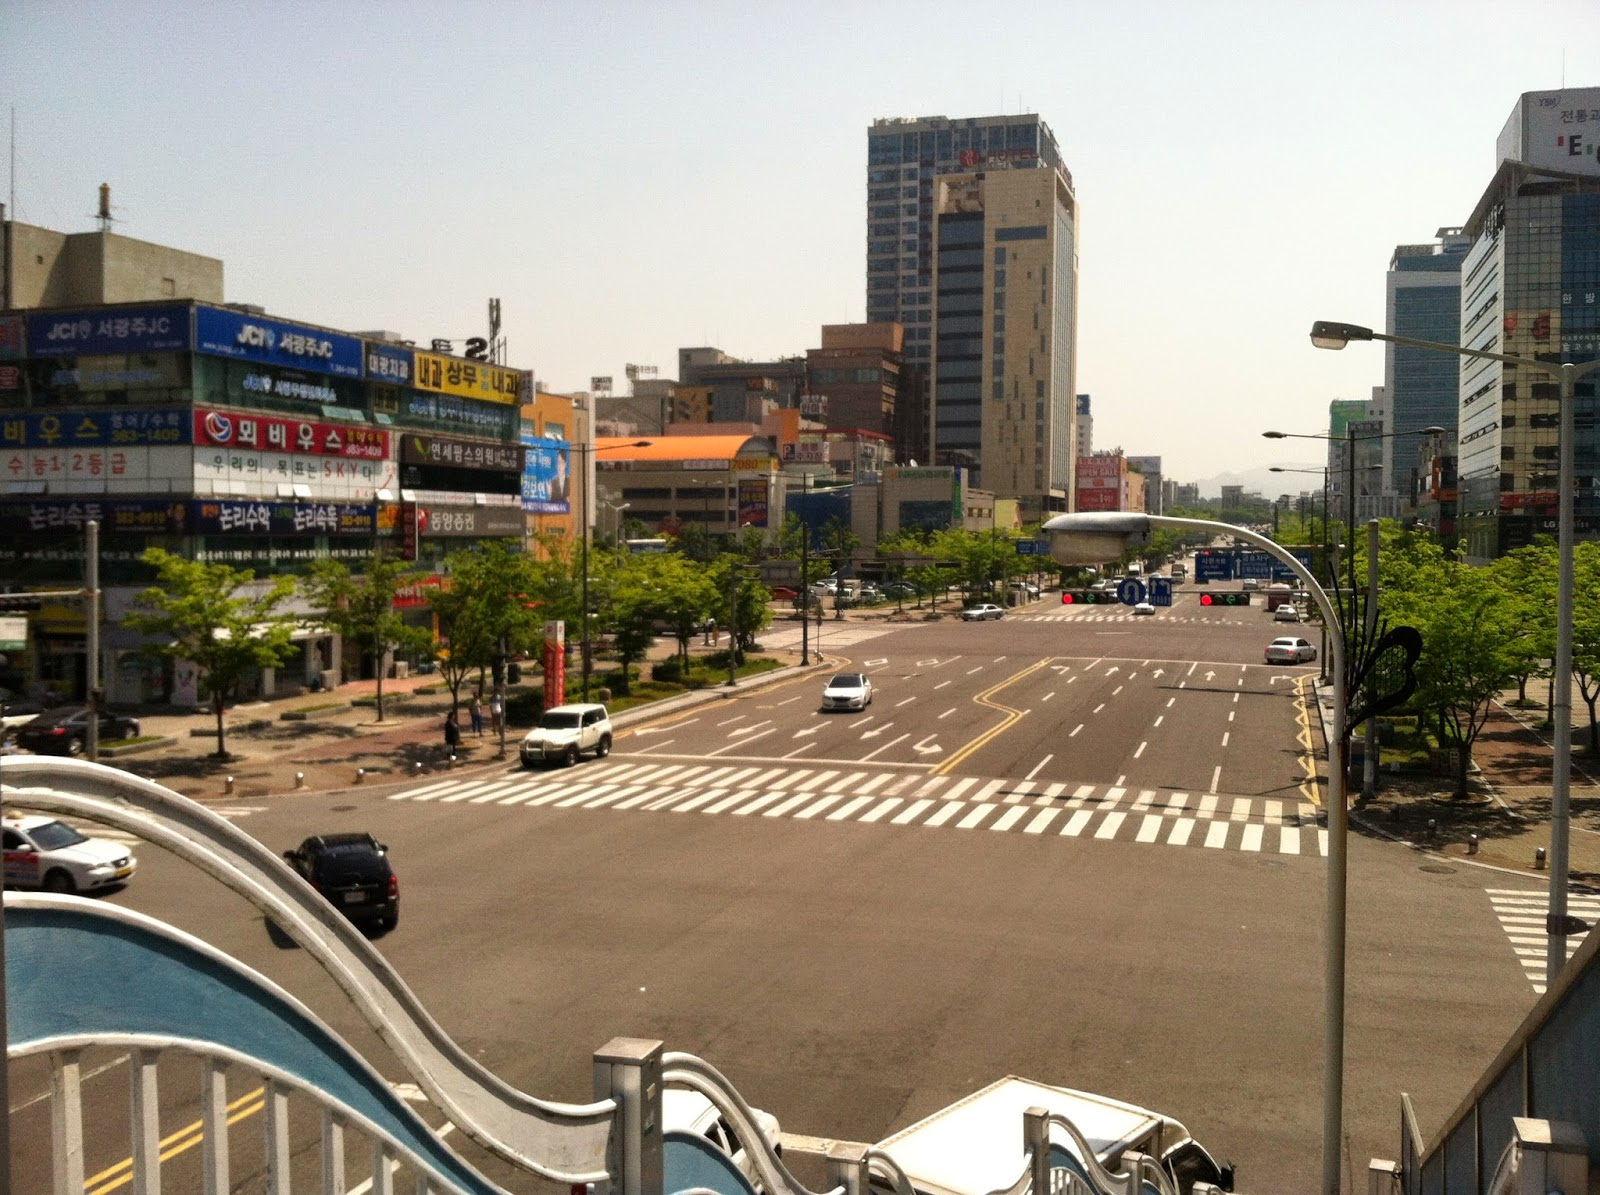 Picture of street in gwangju taken from pedestrian overpass